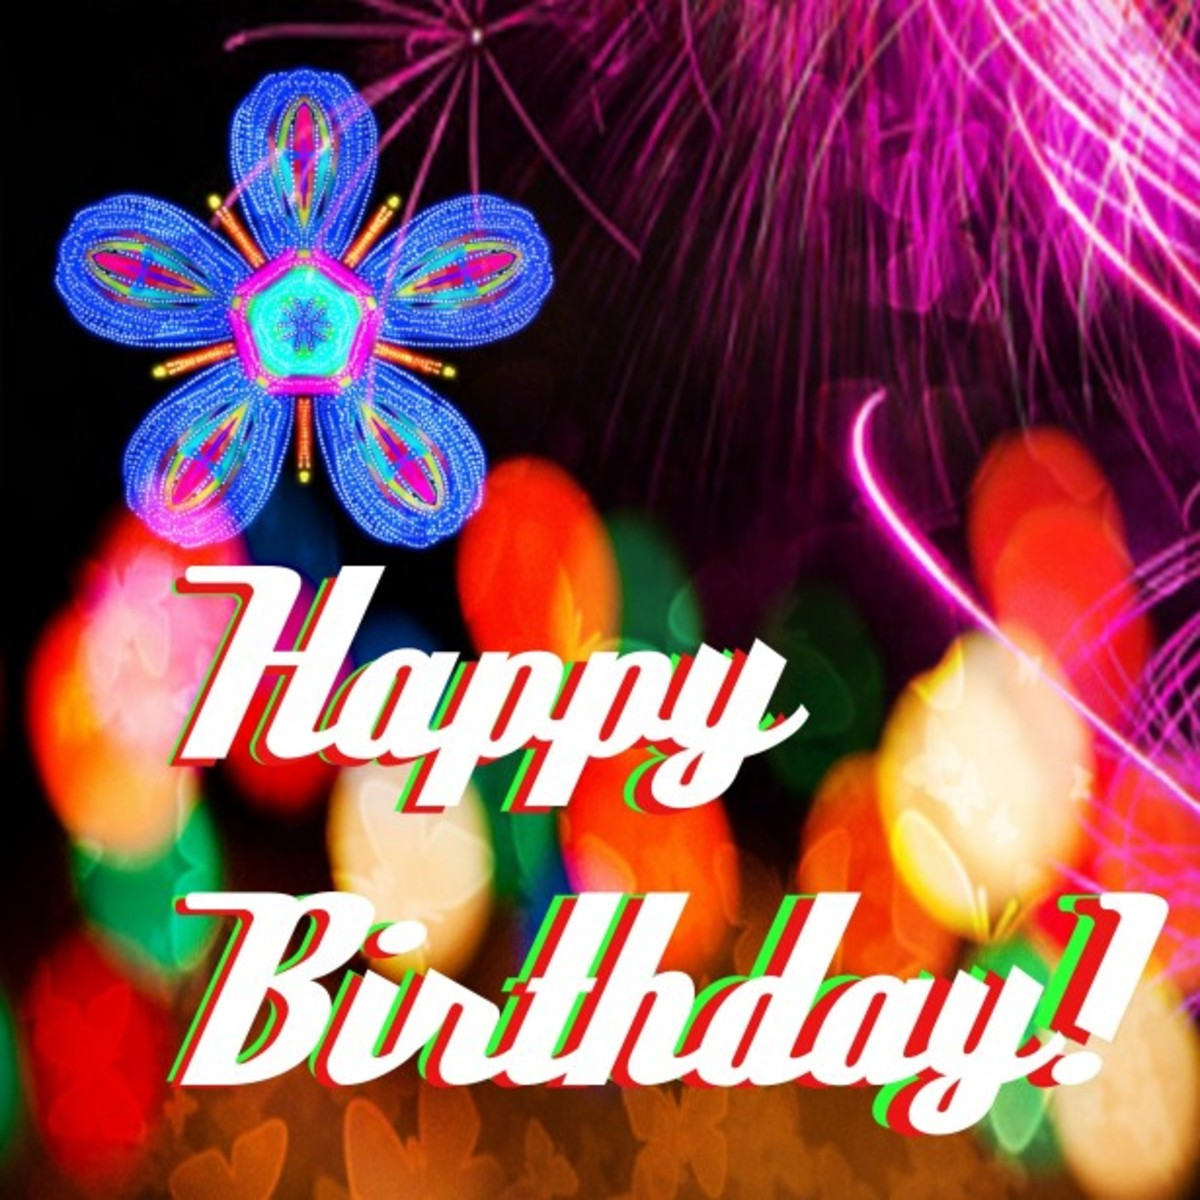 Happy Birthday Clip Art with Flowers and Fireworks